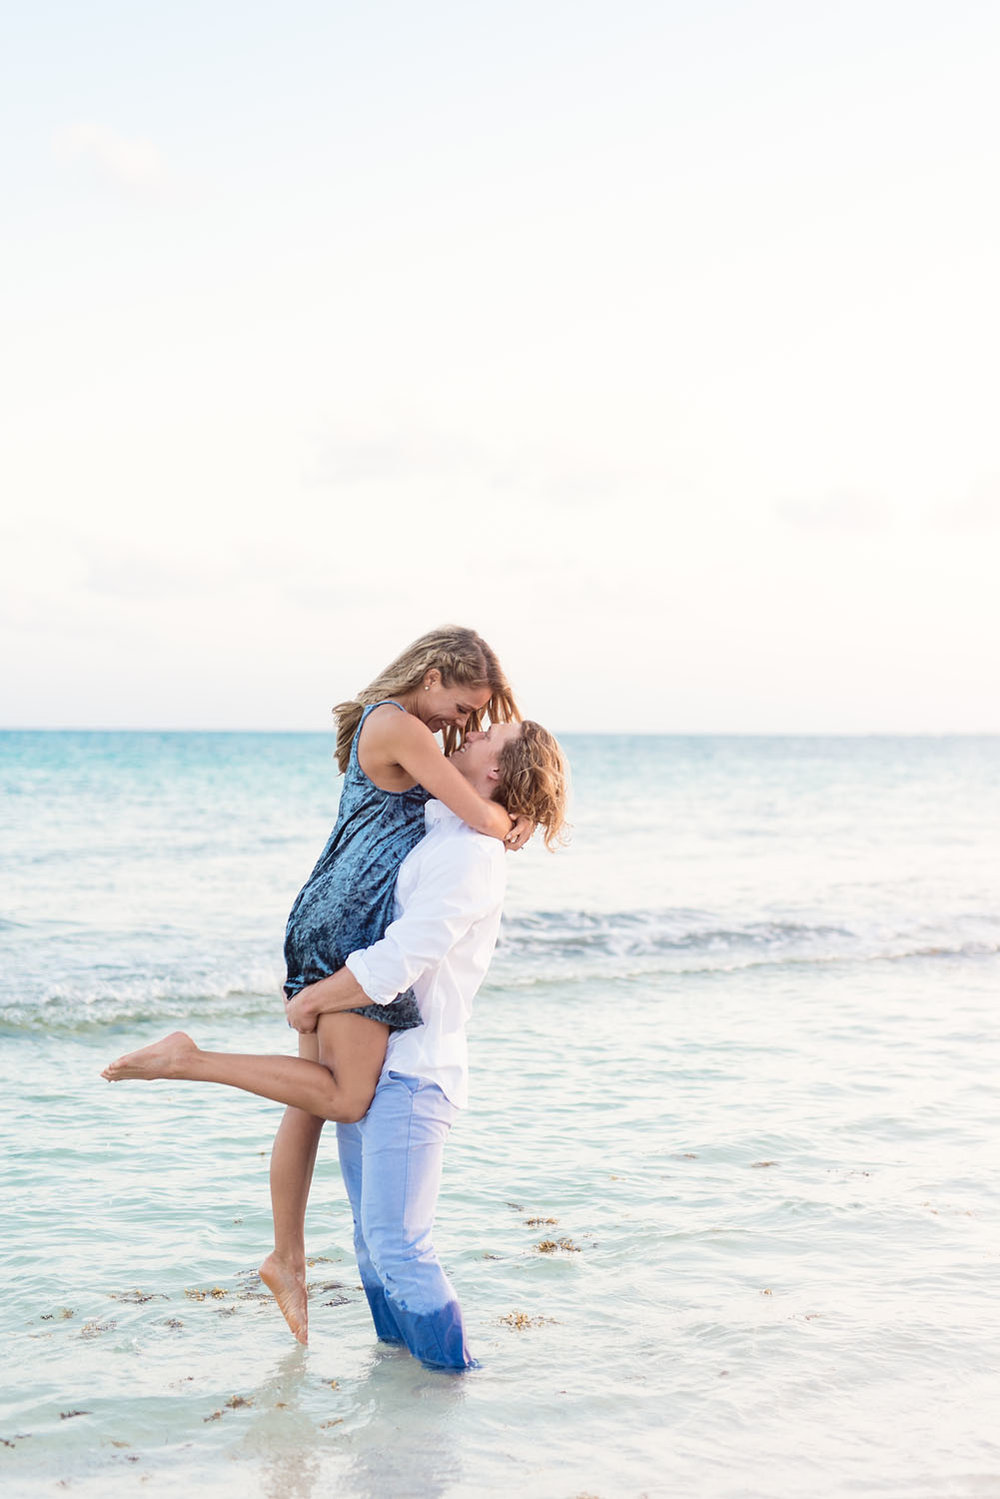 beach-pre-wedding-ideas.jpg